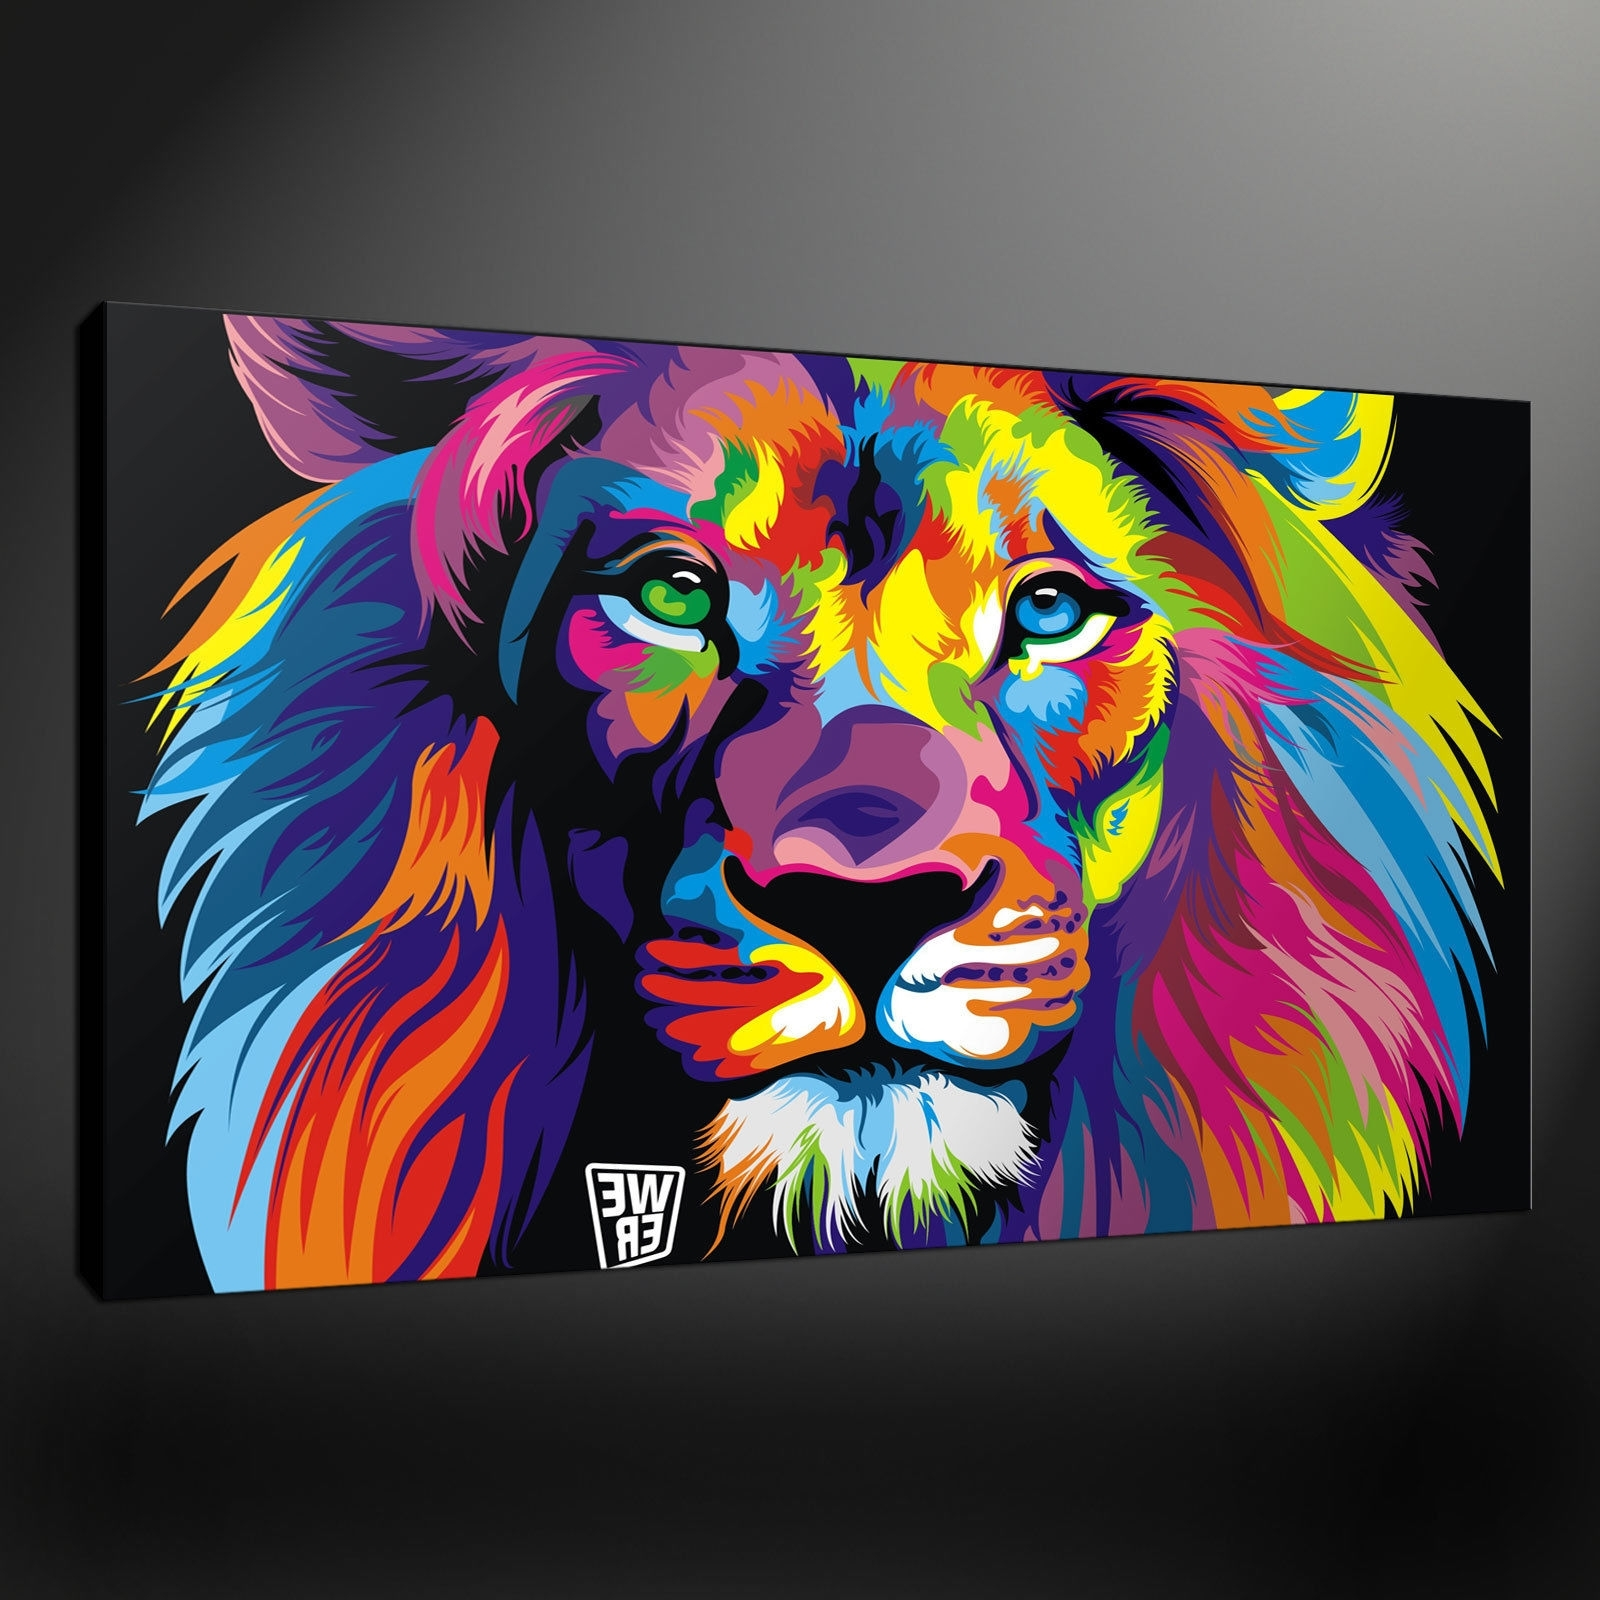 Abstract Lion Quality Canvas Print Picture Wall Art Design Free Uk With Regard To 2018 Animal Canvas Wall Art (View 3 of 15)